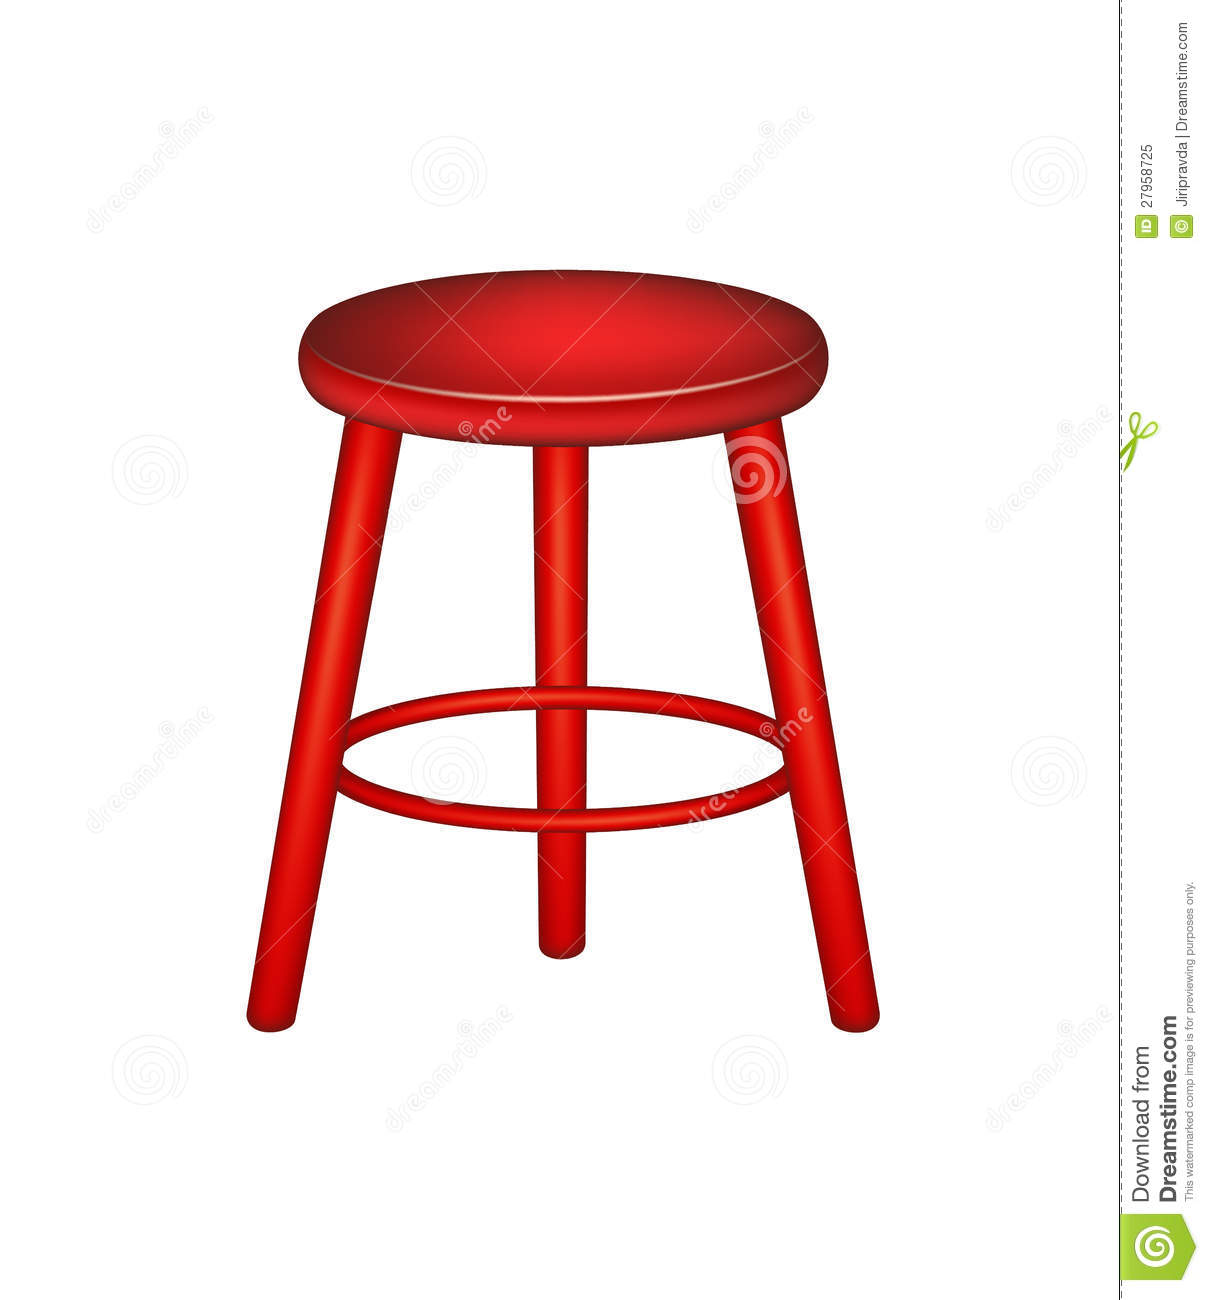 Retro Stool In Red Design Stock Vector Image Of Retro